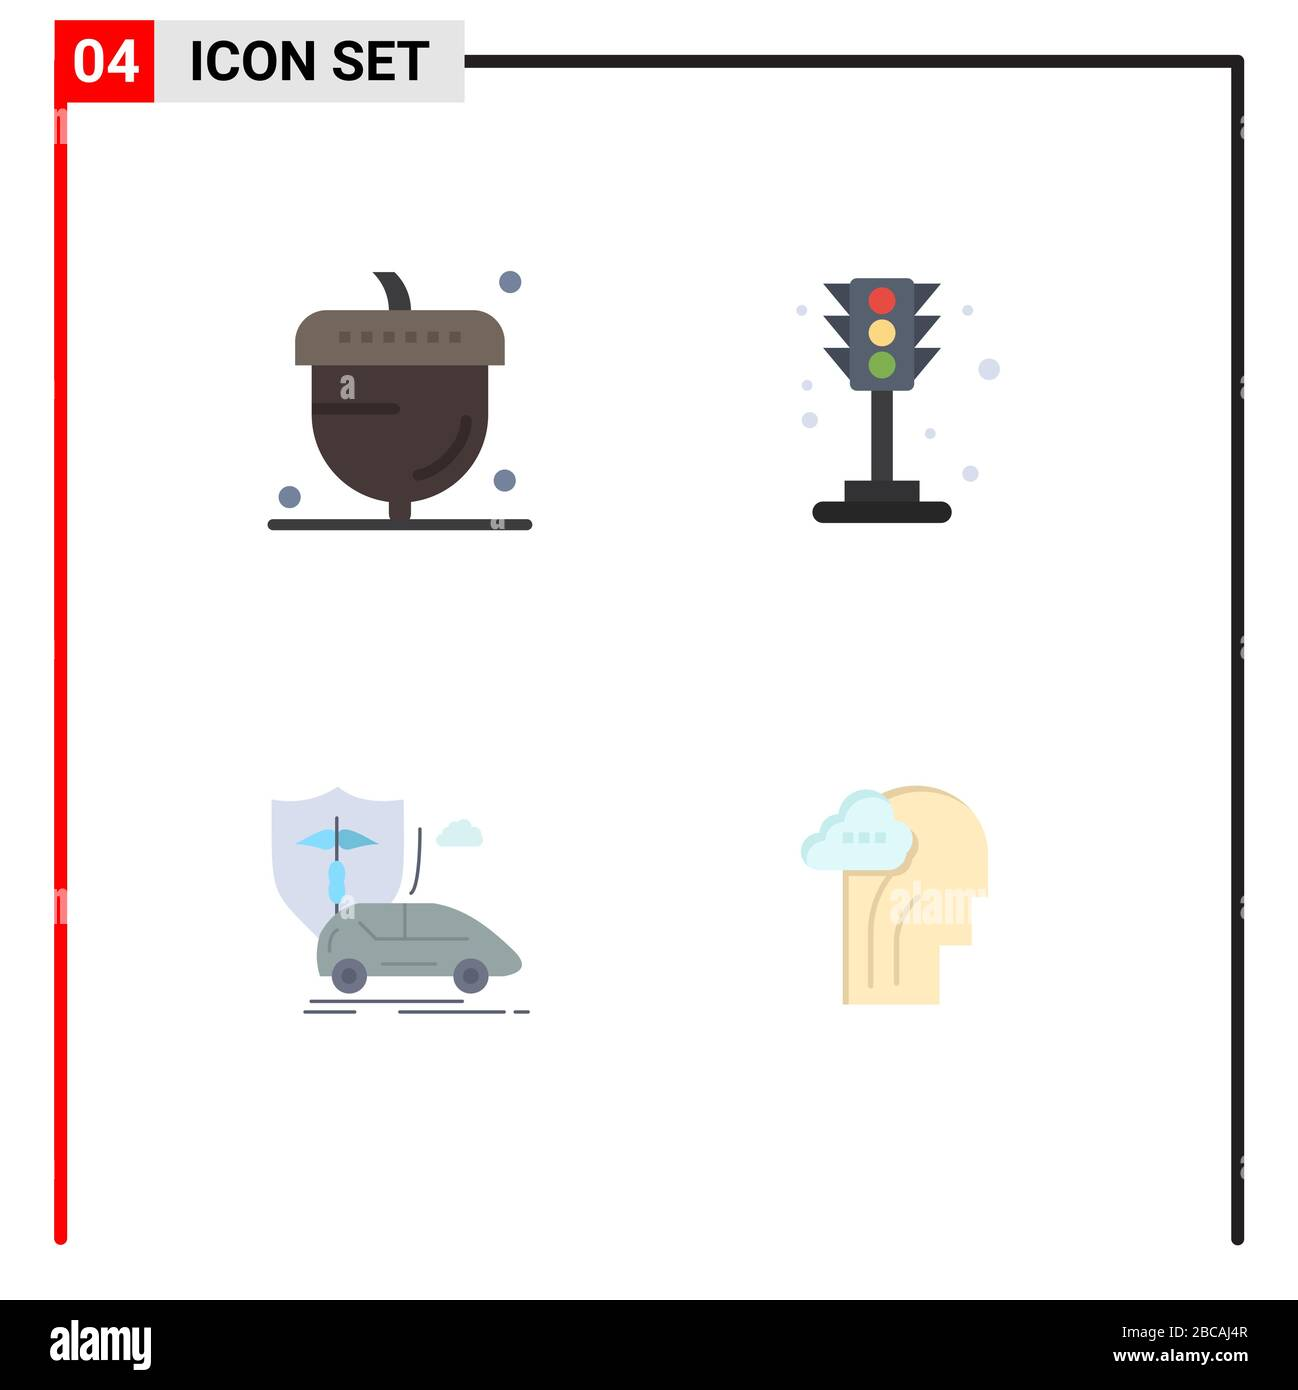 Group Of 4 Modern Flat Icons Set For Acorn Car Oak Life Insurance Editable Vector Design Elements Stock Vector Image Art Alamy